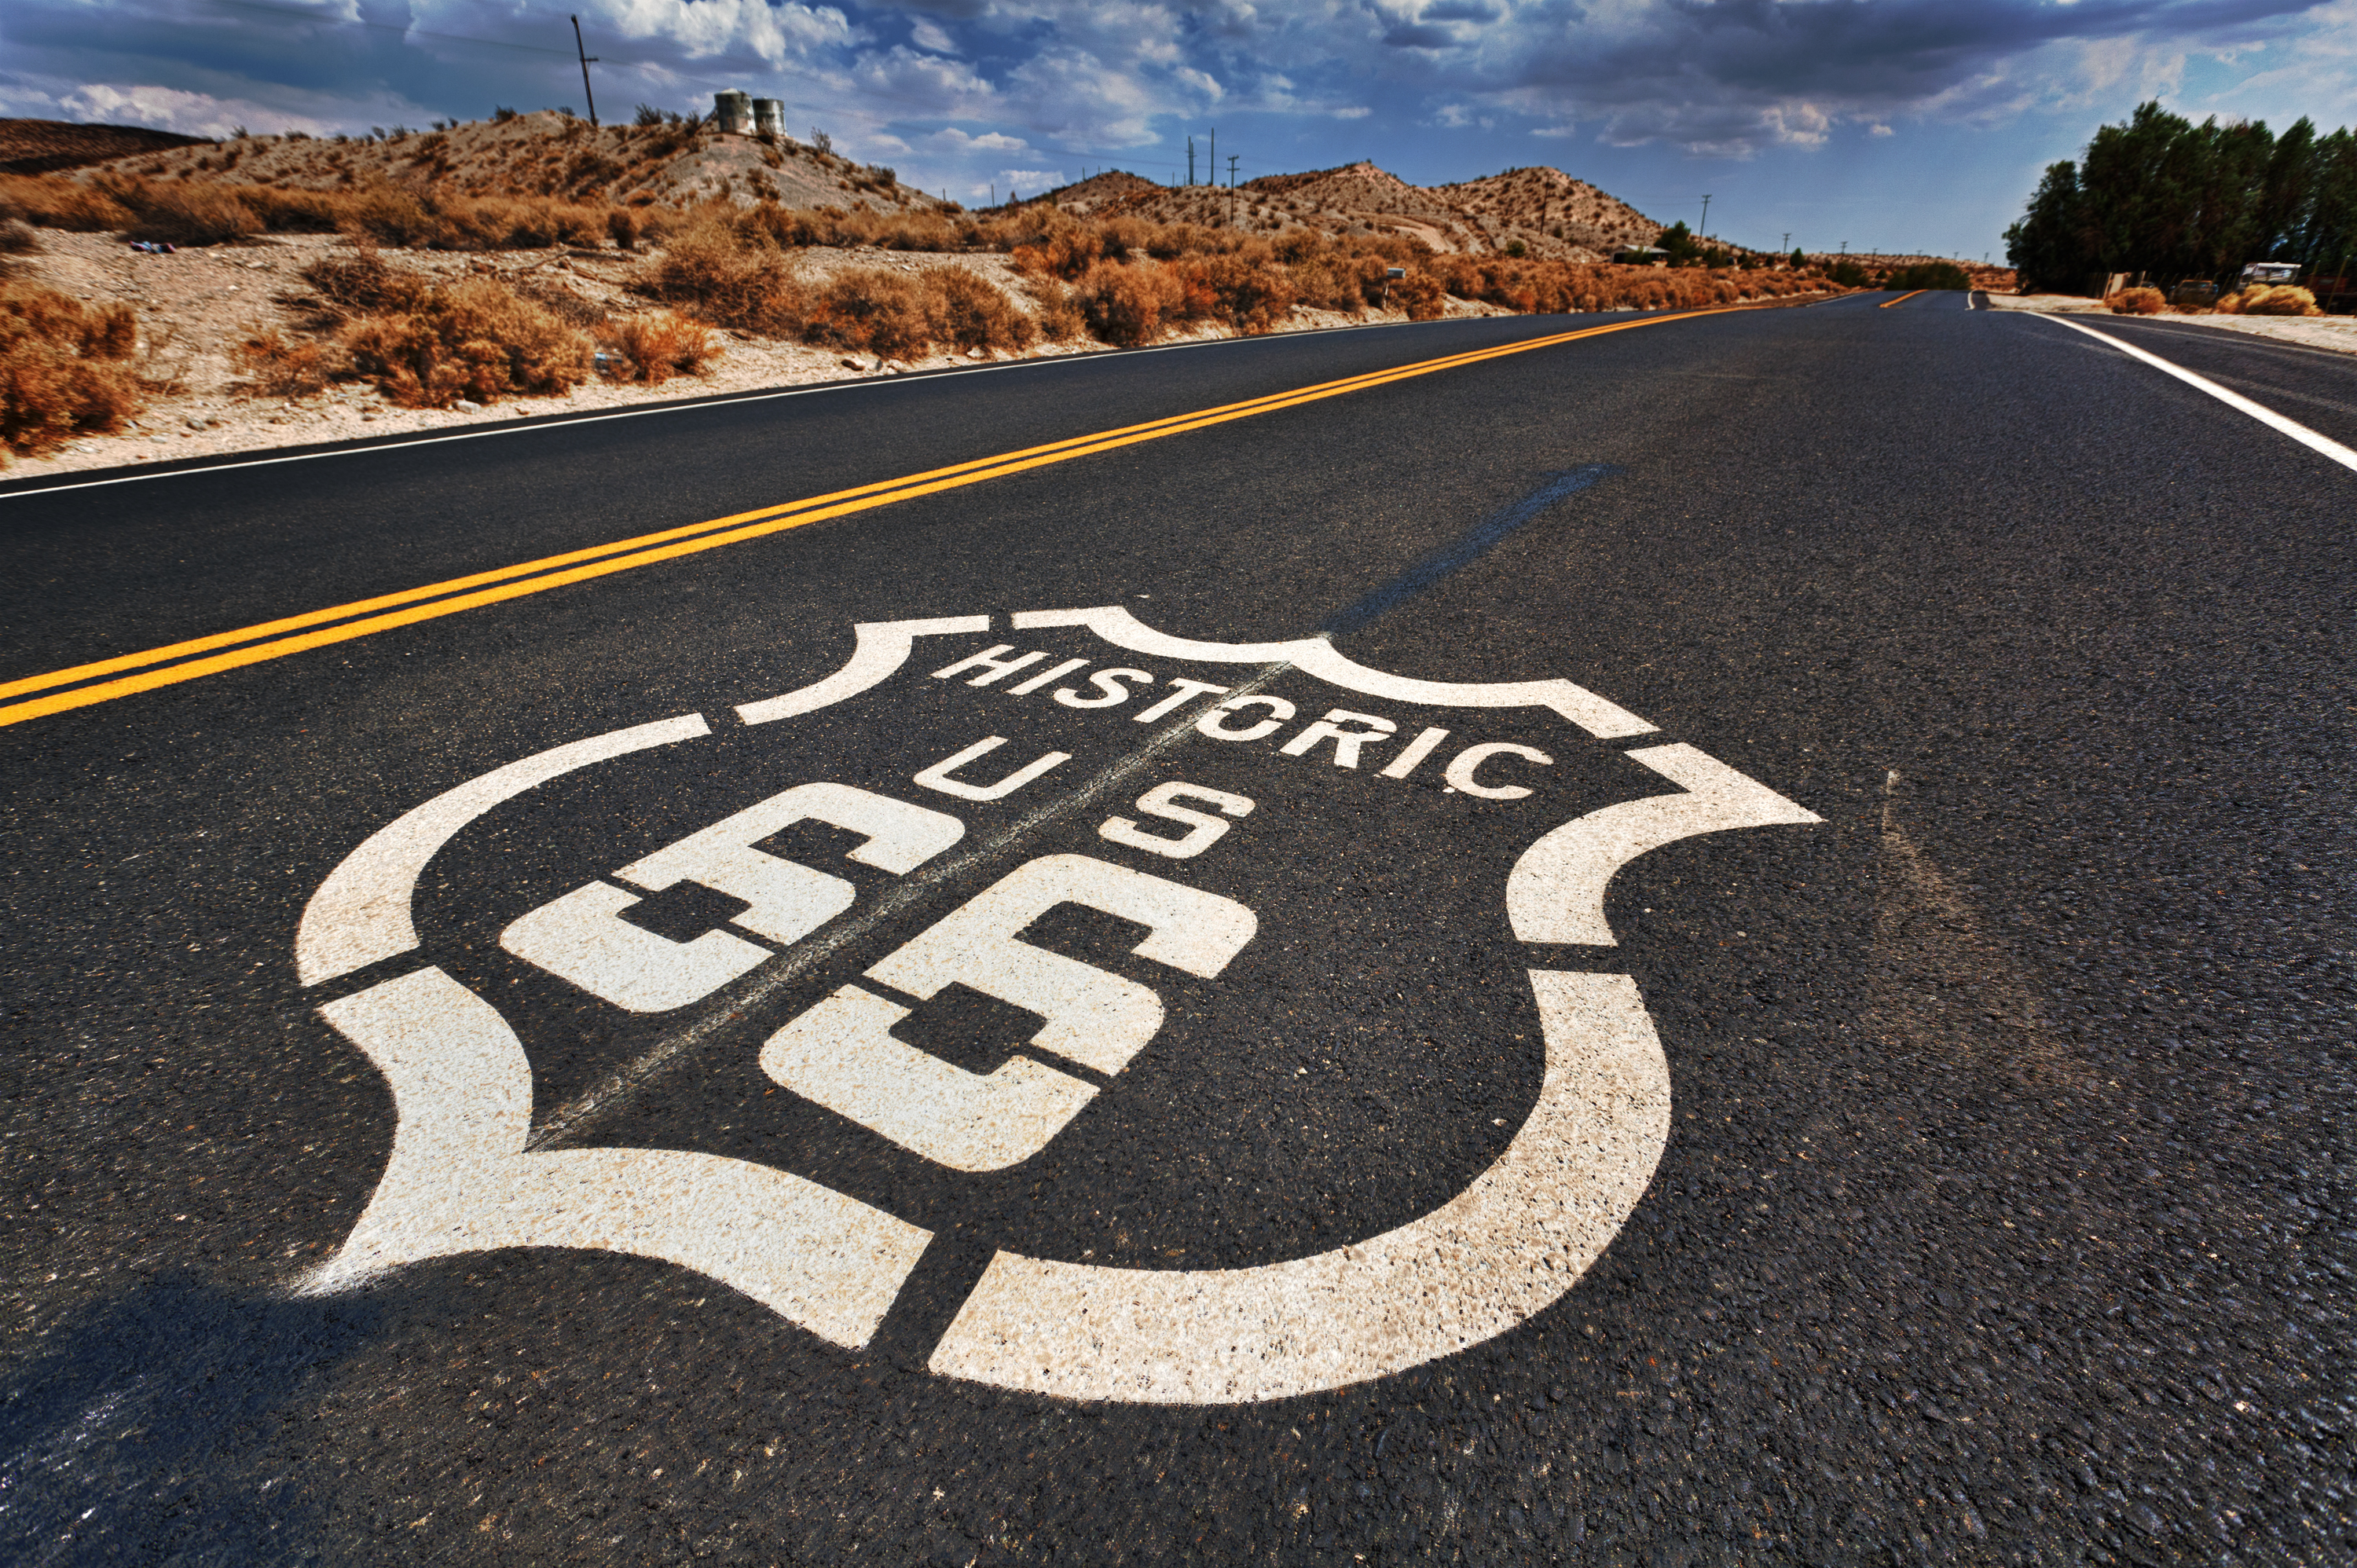 route 66 dating Route 66 is lined with old-time diners and quirky local mainstays with fare outmatched only by their character.